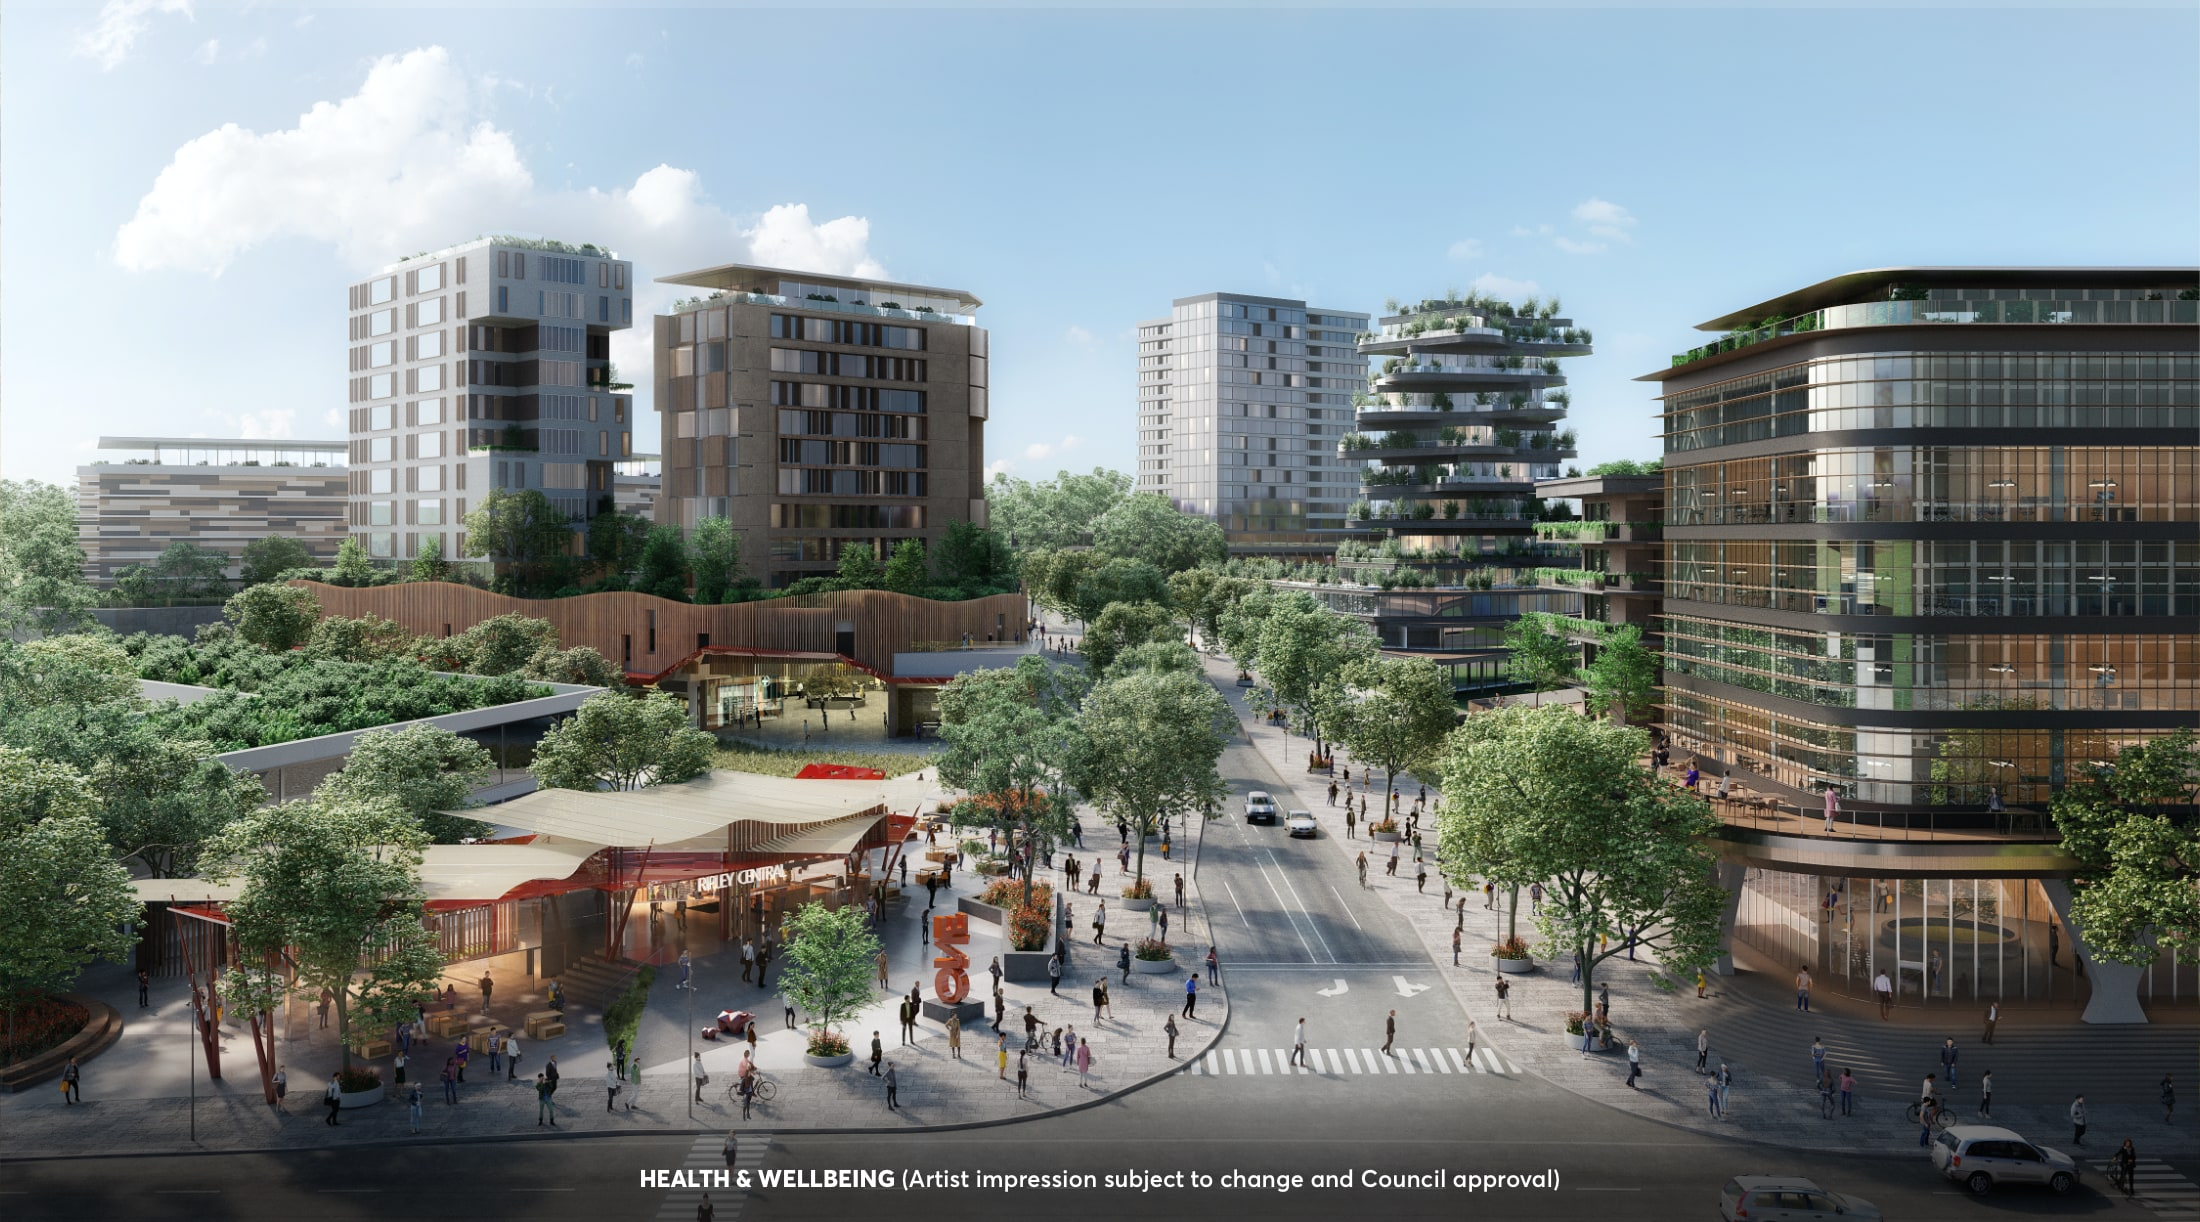 Health And Wellbeing - Ripley Town Centre - Artist Impression (subject to change and Council approval)